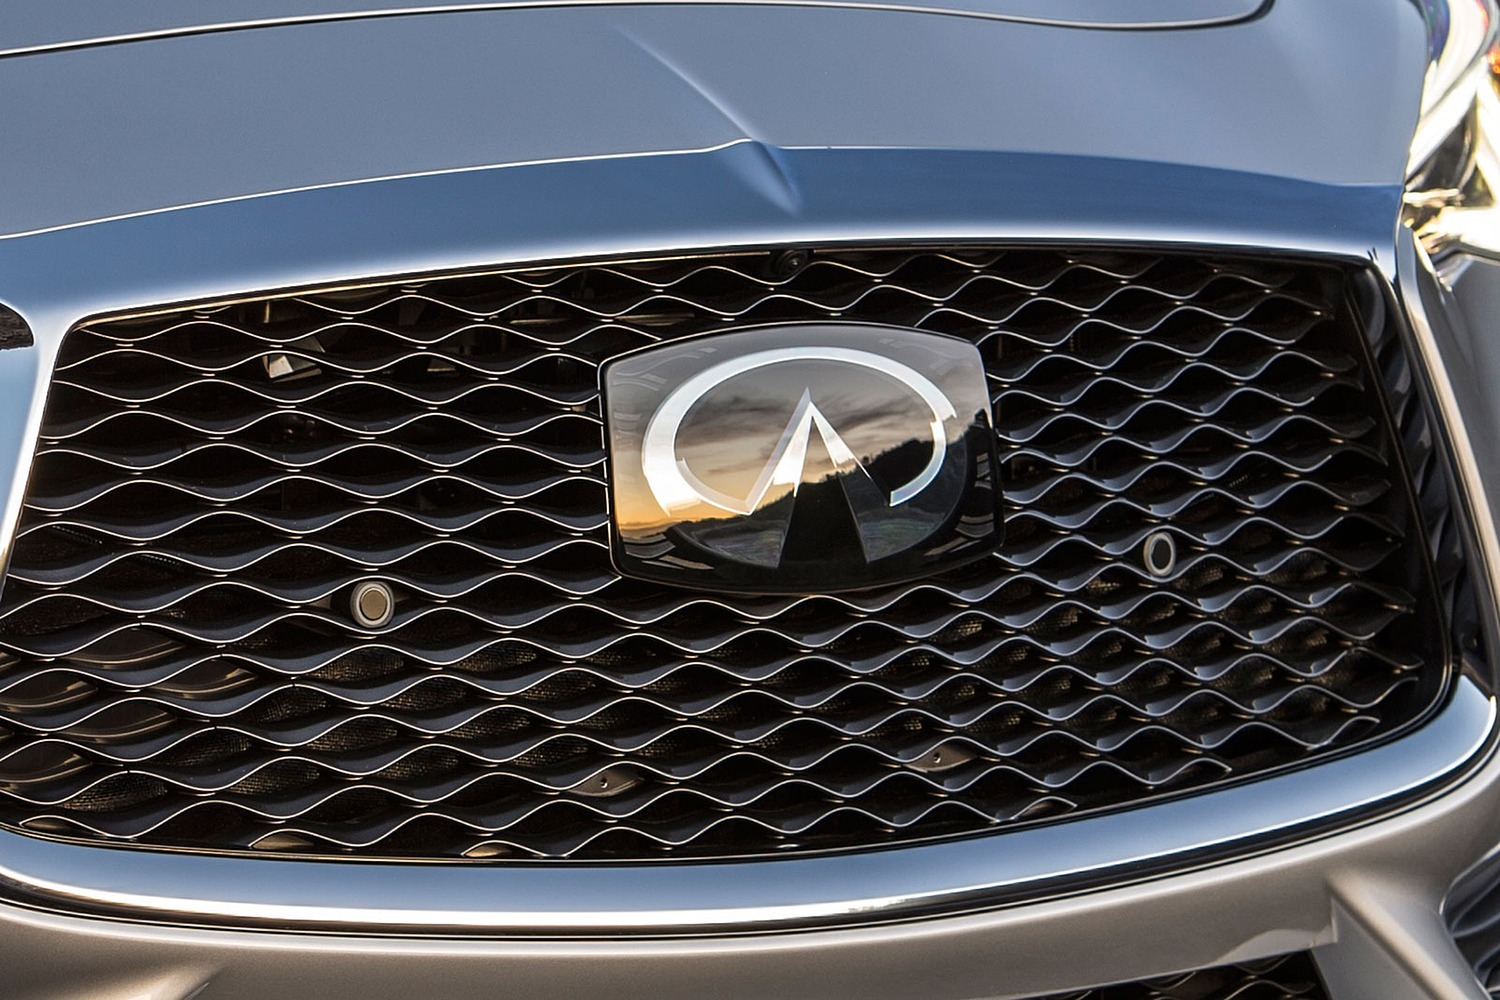 2018 INFINITI Q60 3.0t SPORT Coupe Front Badge